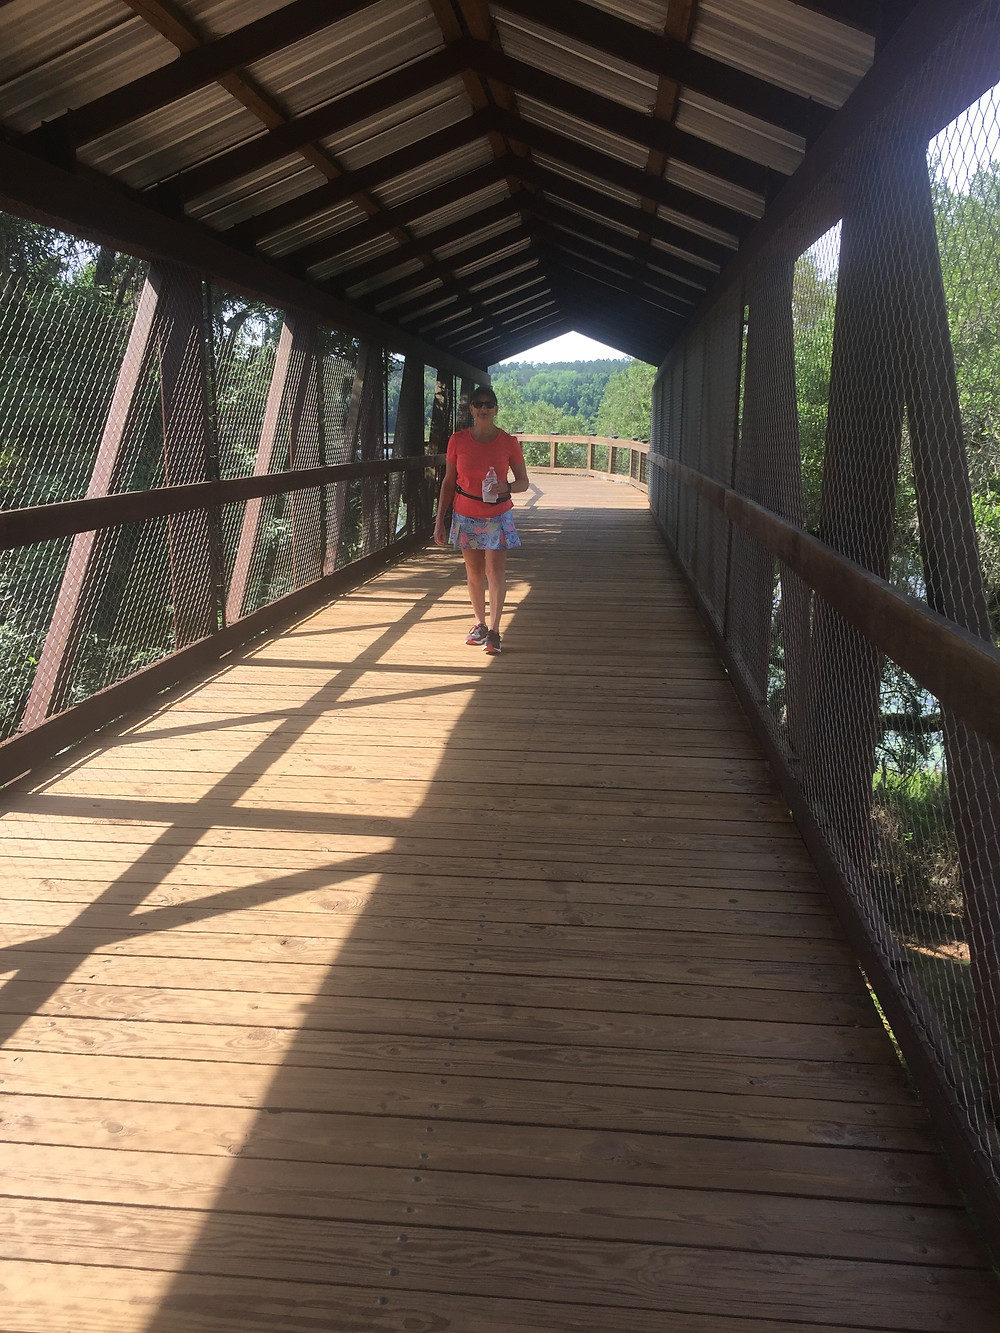 Covered bridge at the Alford Greenway